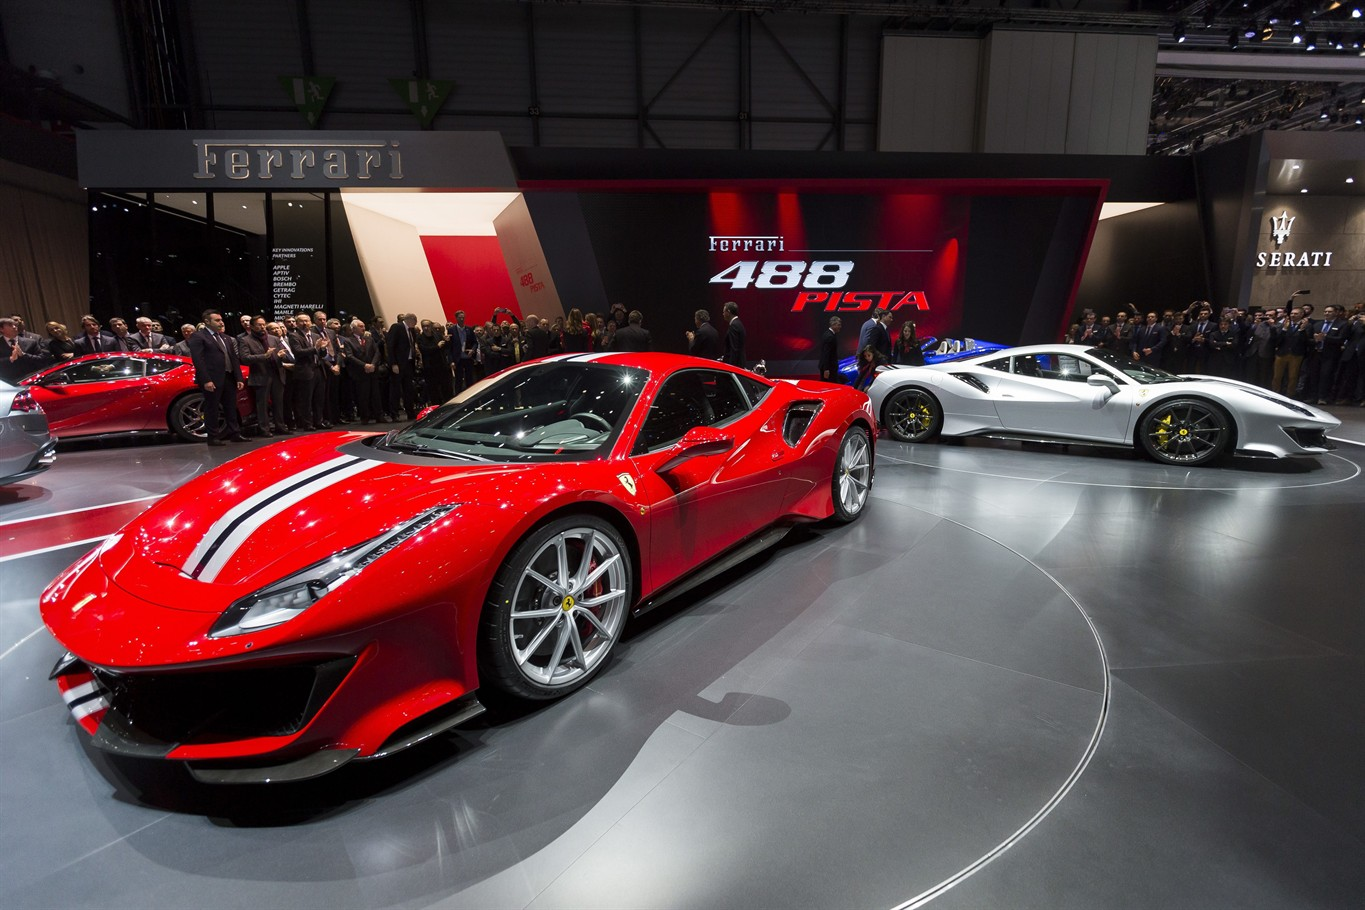 The New Ferrari 488 Pista Is Presented During The Press Day At The 88th  Geneva International Motor Show In Geneva, Switzerland, Tuesday, March 6,  2018.